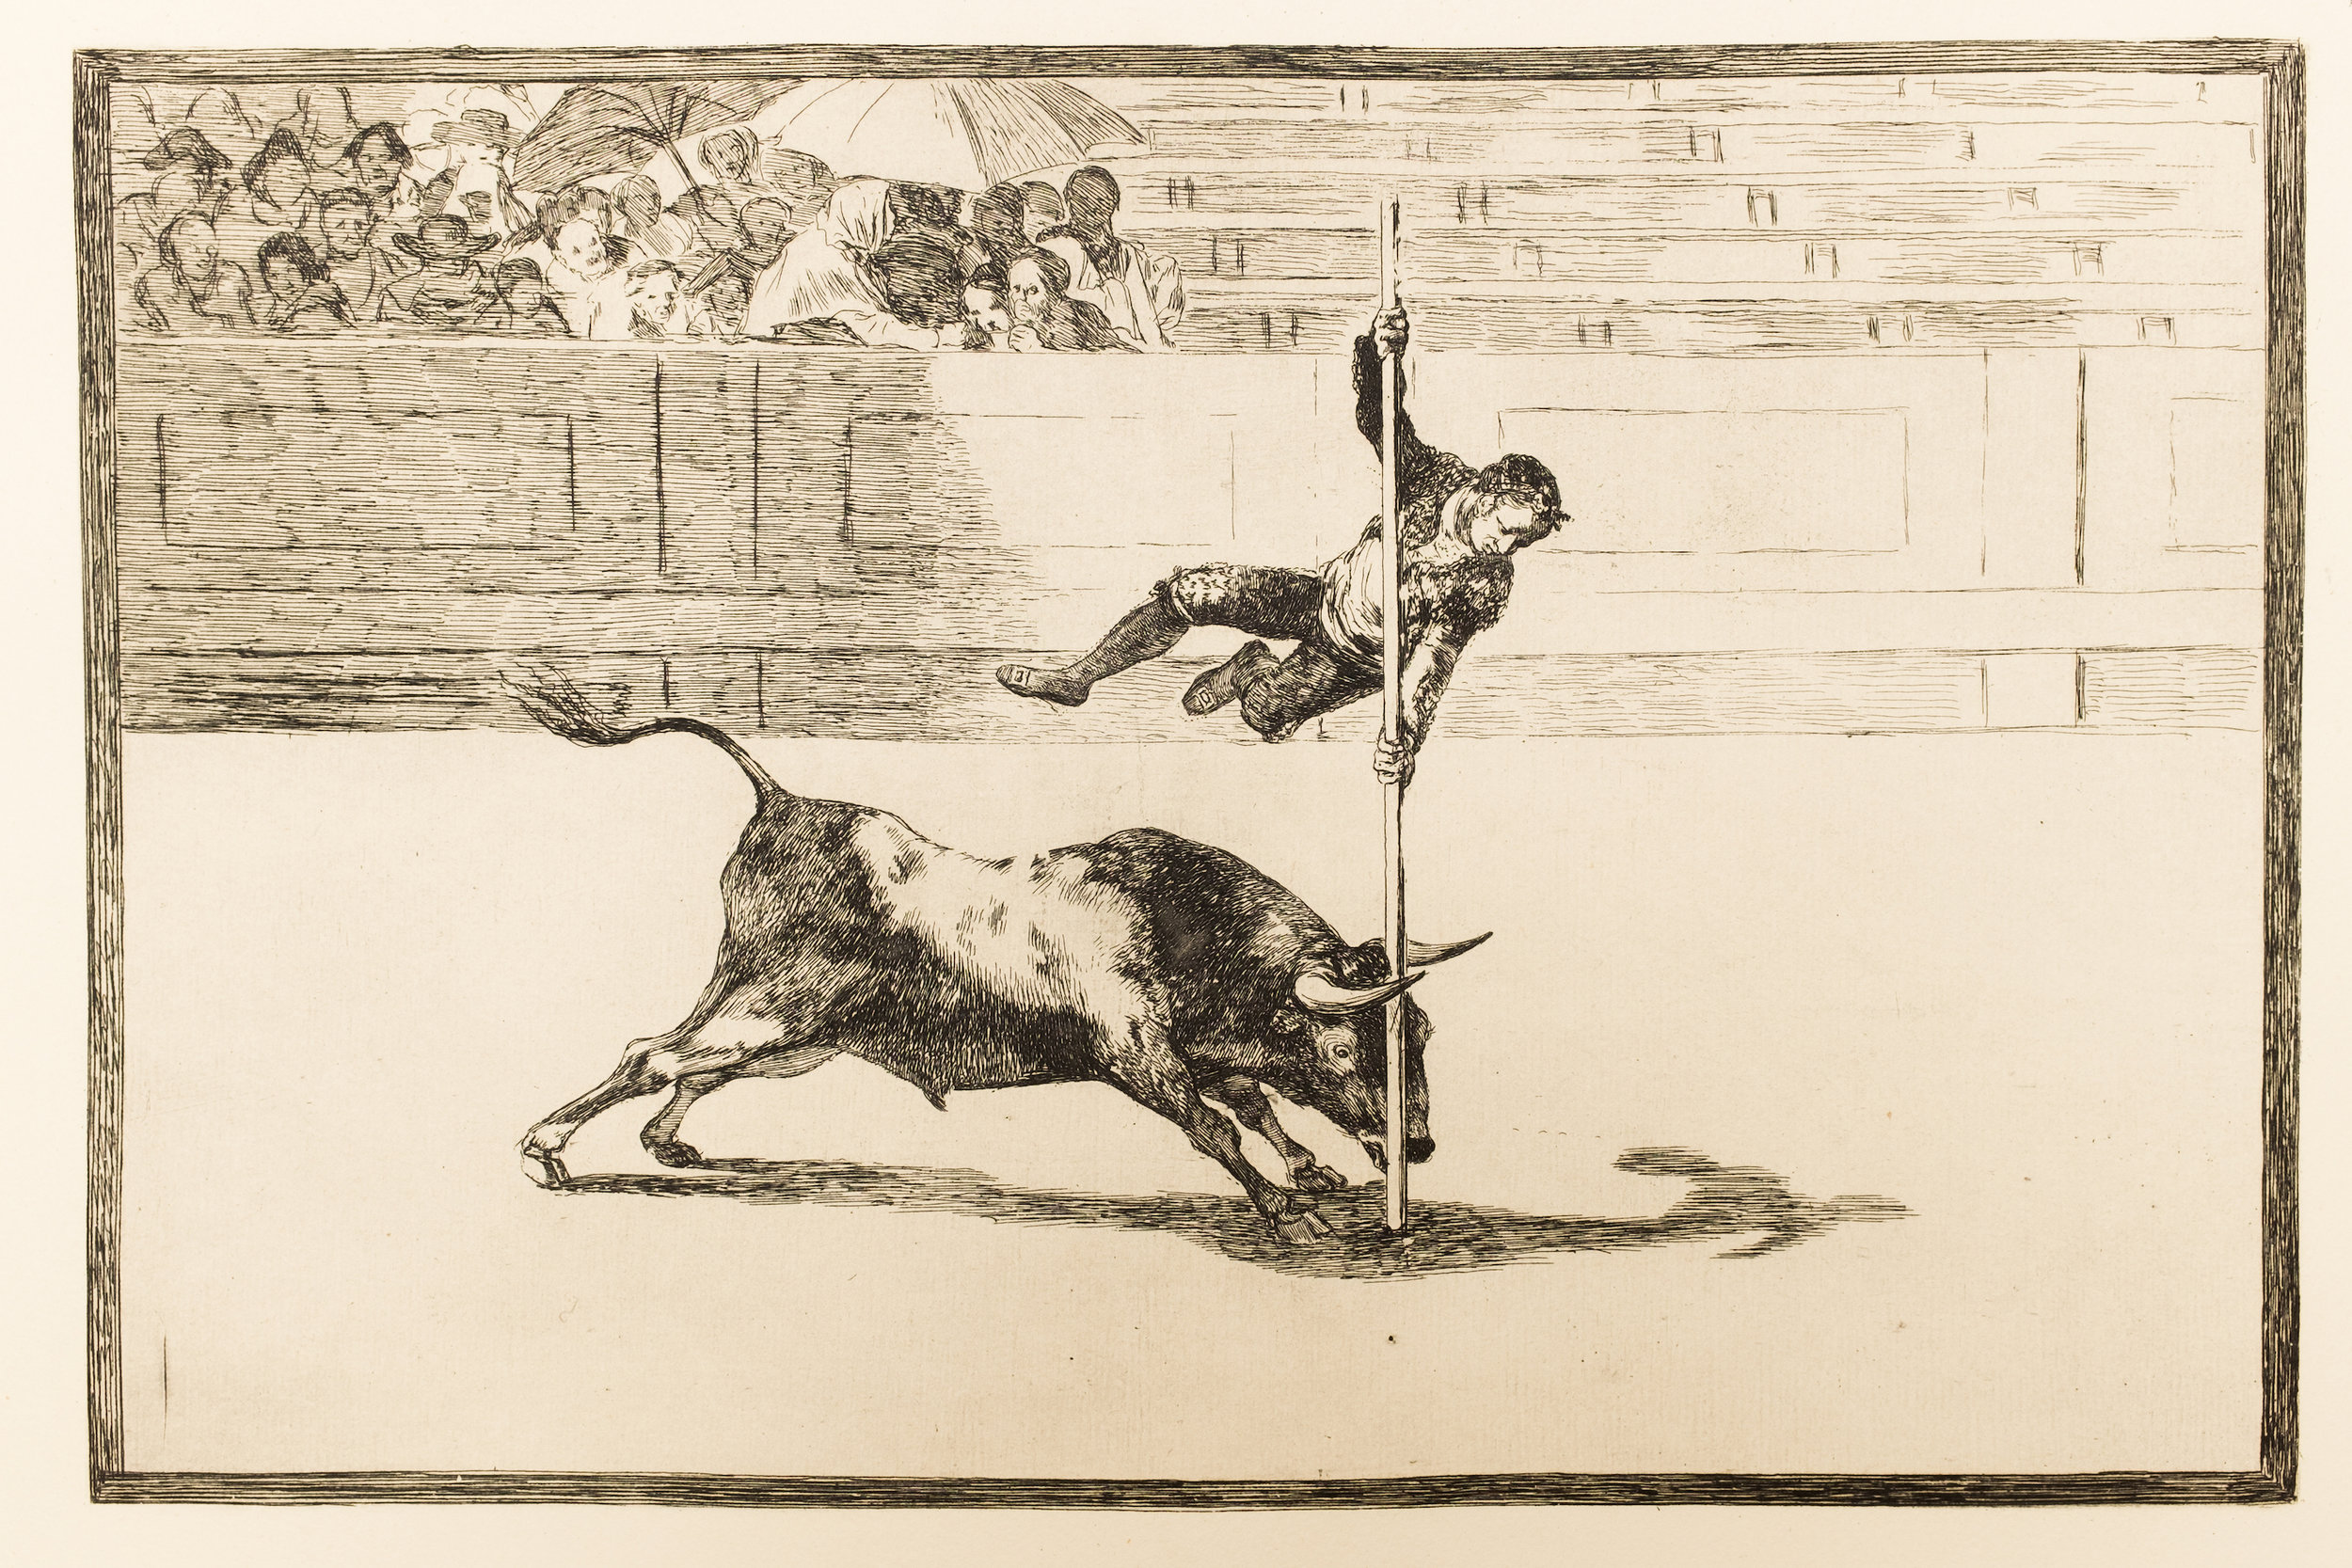 Francisco Goya: The agility and audacity of Juanito Apiñani in [the ring] at Madrid from La Tauromaquia, (Bullfighting) (1815–1816). State Central Museum of Contemporary History of Russia, Moscow.